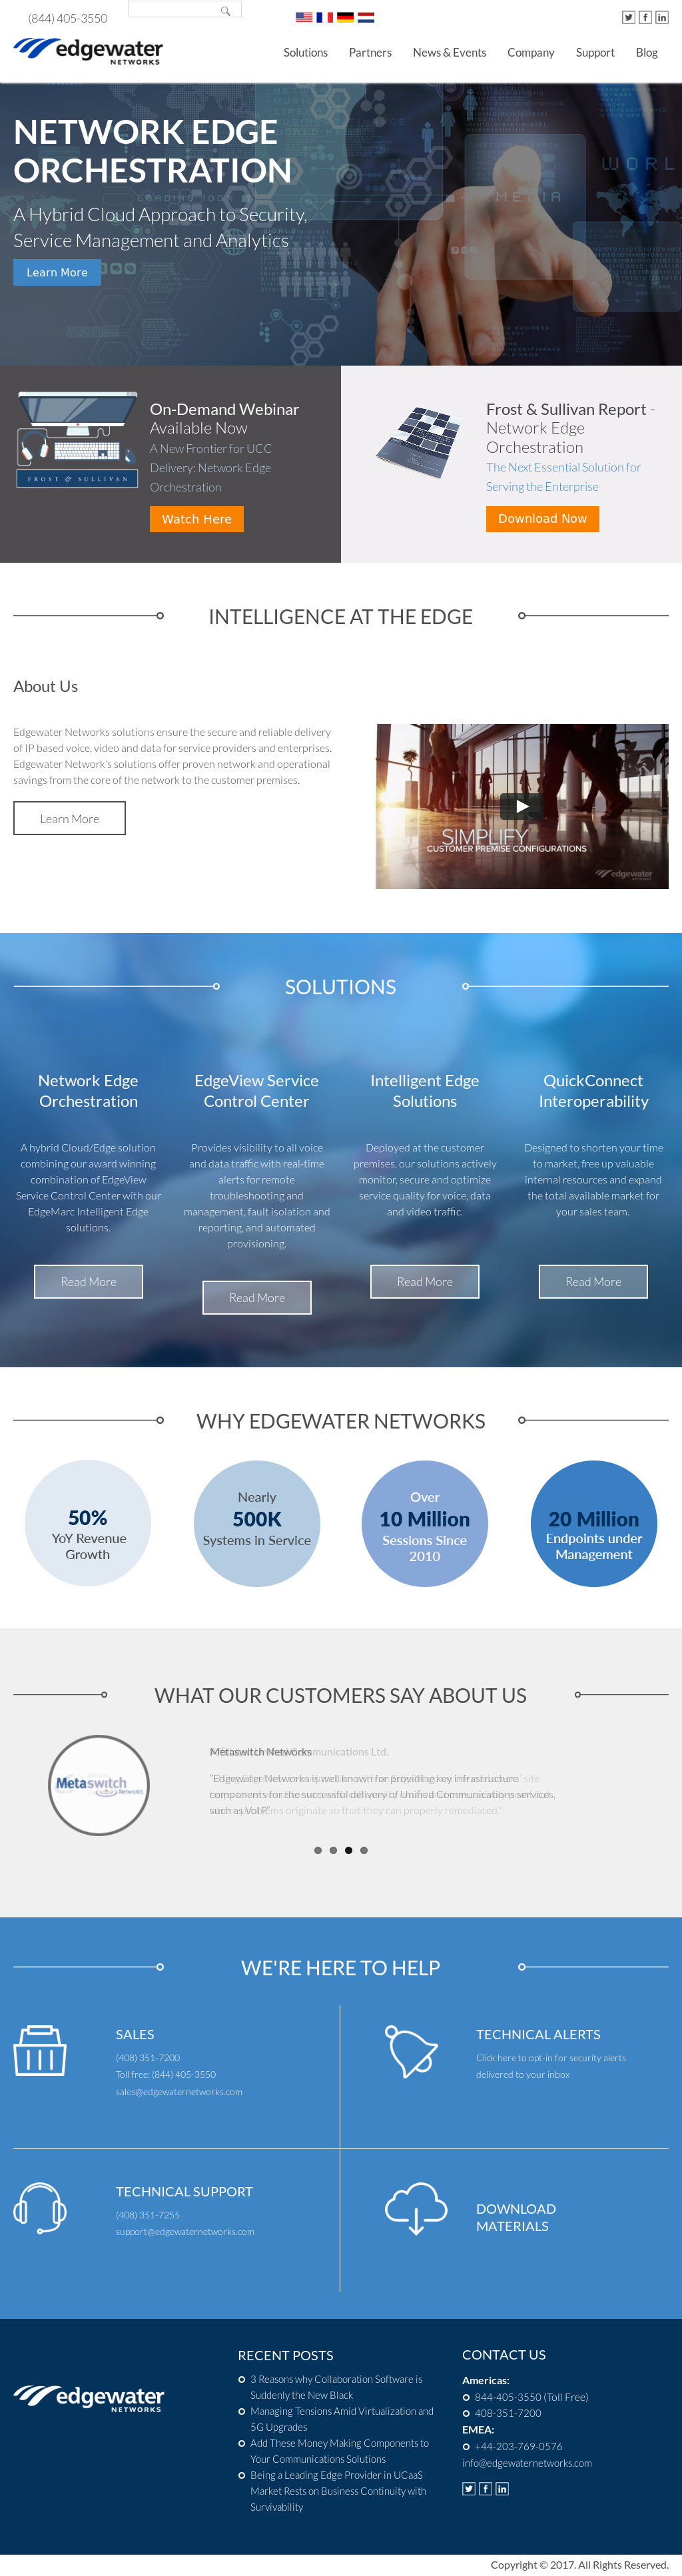 Edgewater Networks Competitors, Revenue and Employees